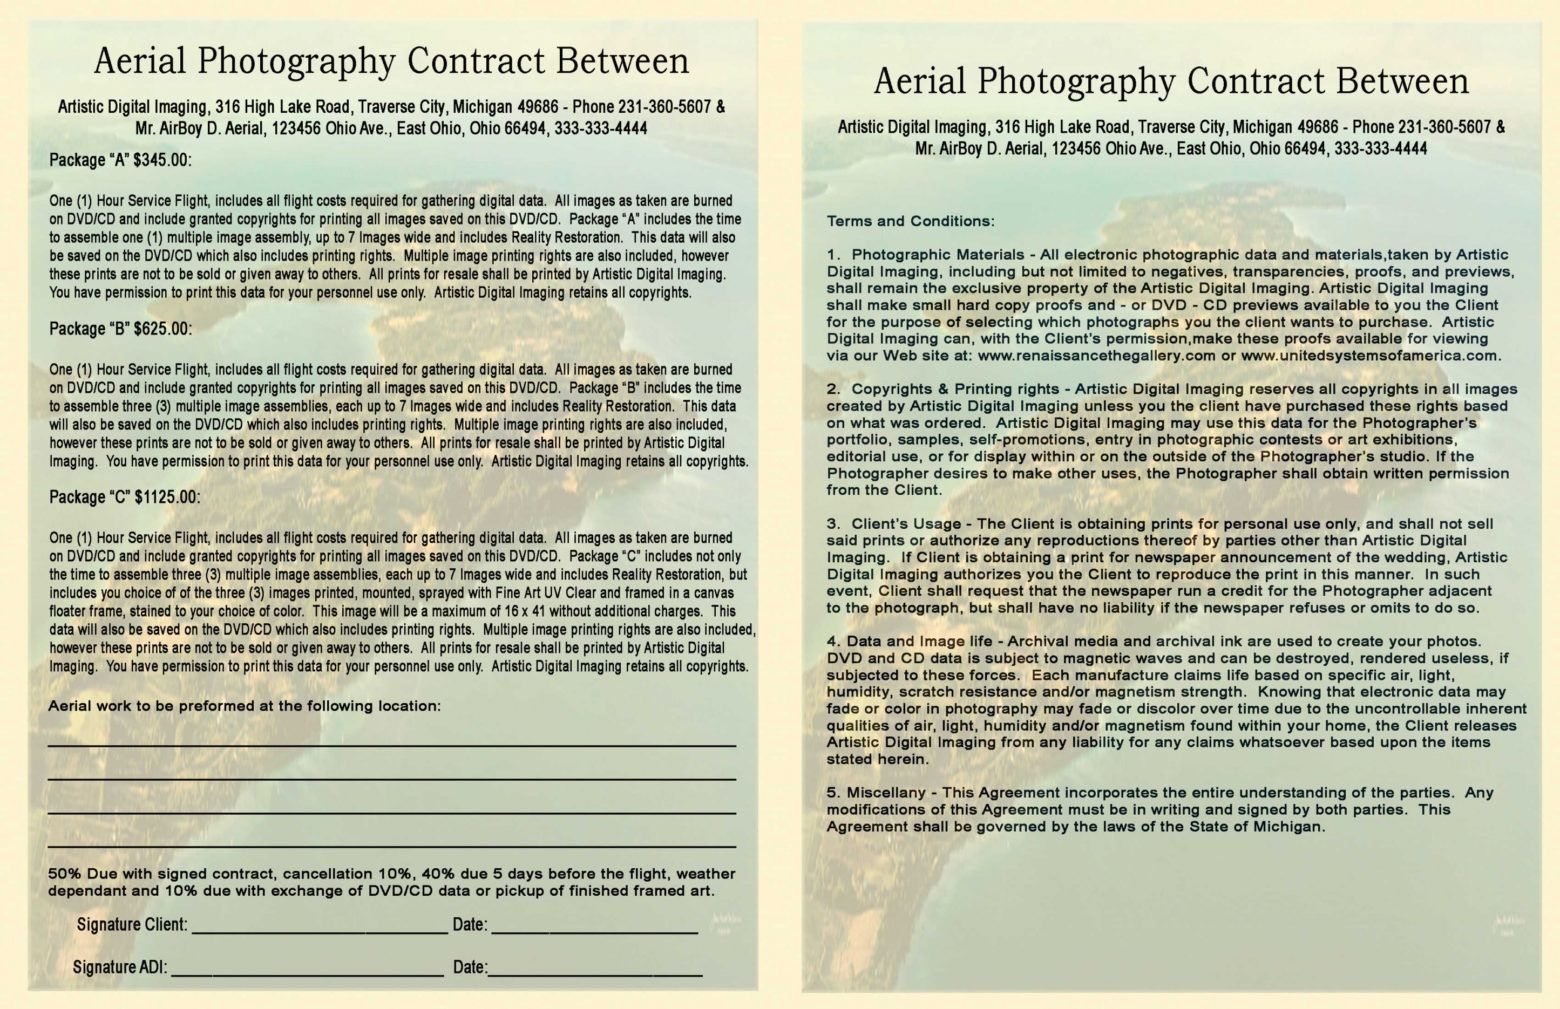 artistic digital imaging by james robert mccammon aerial photography contract template